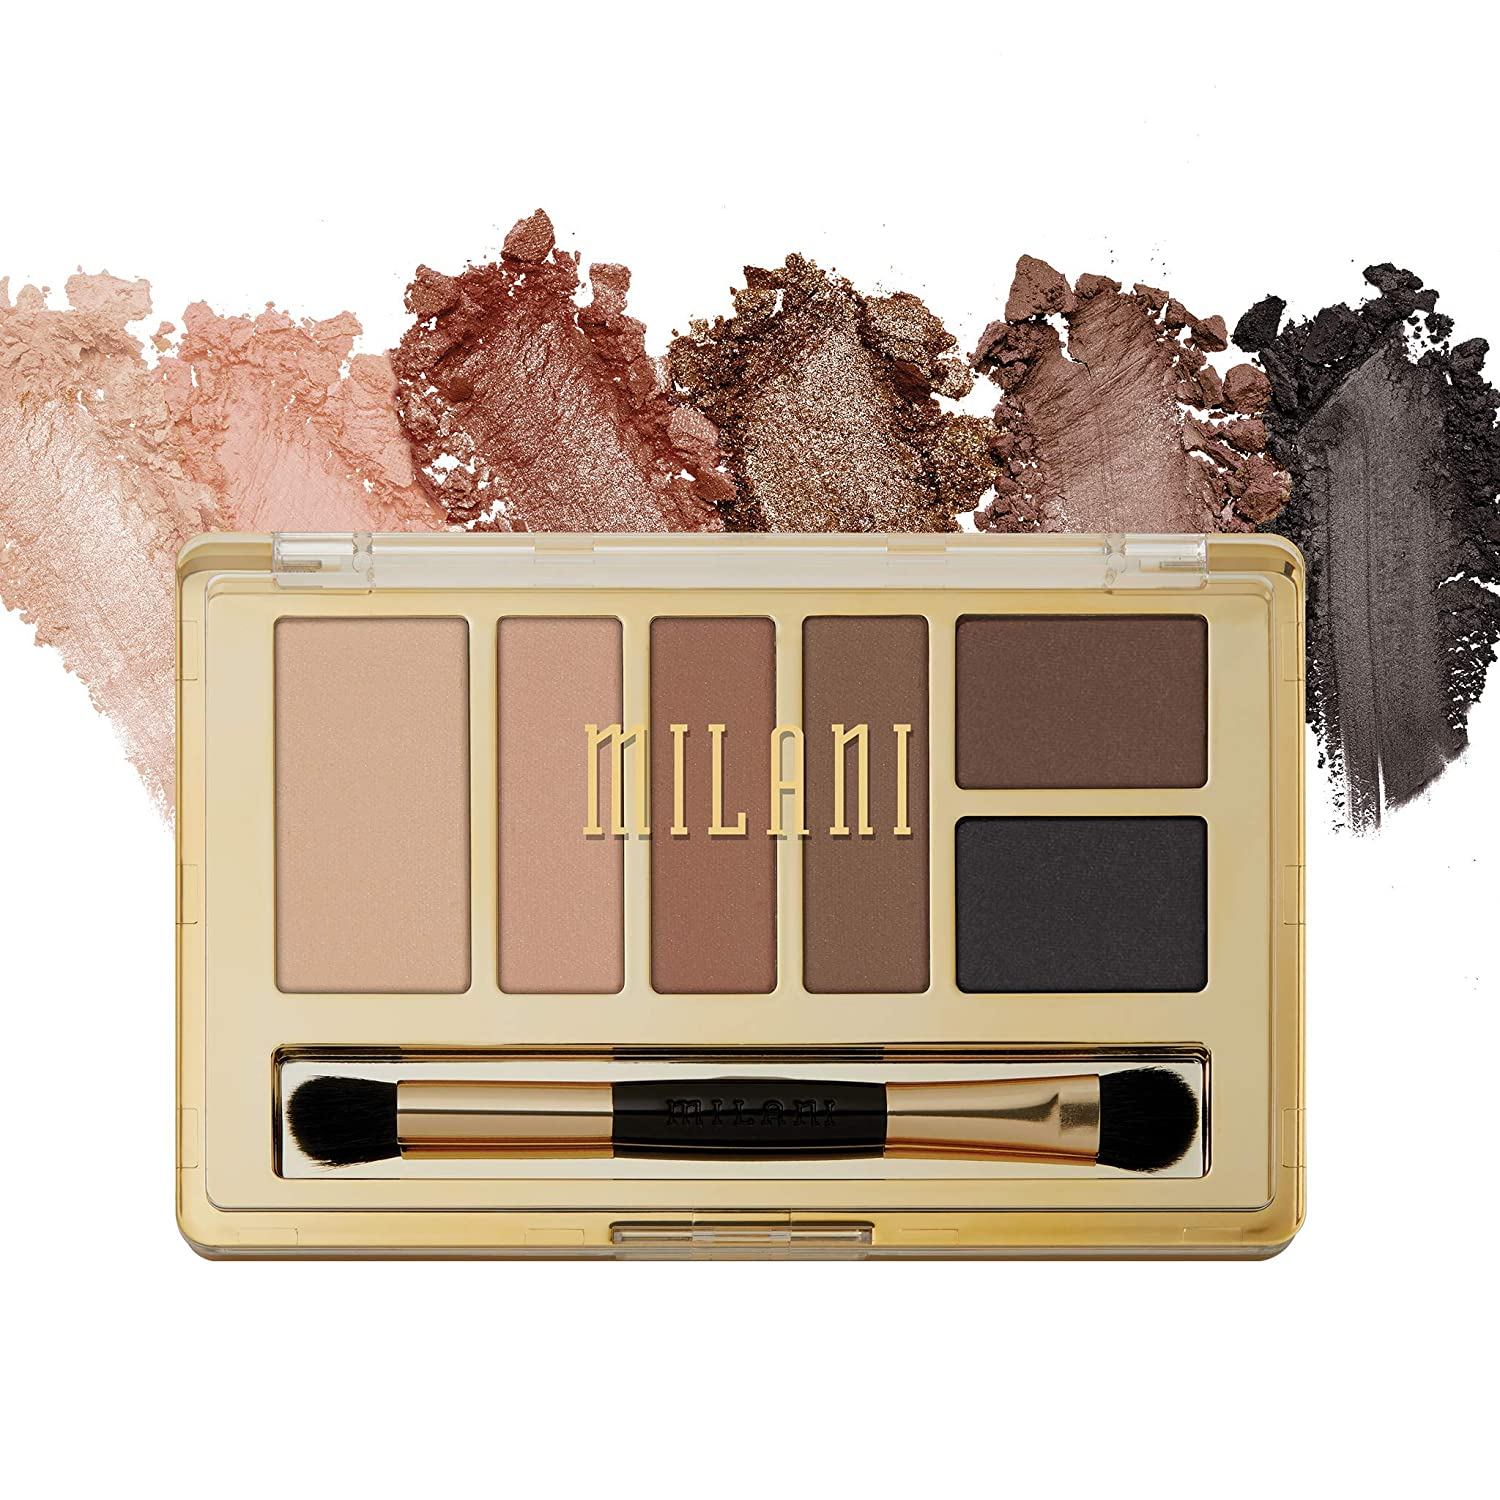 Milani Everyday Eyes Eyeshadow Palette - Basic Mattes (0.21 Ounce) 6 Cruelty-Free Matte or Metallic Eyeshadow Colors to Contour & Highlight